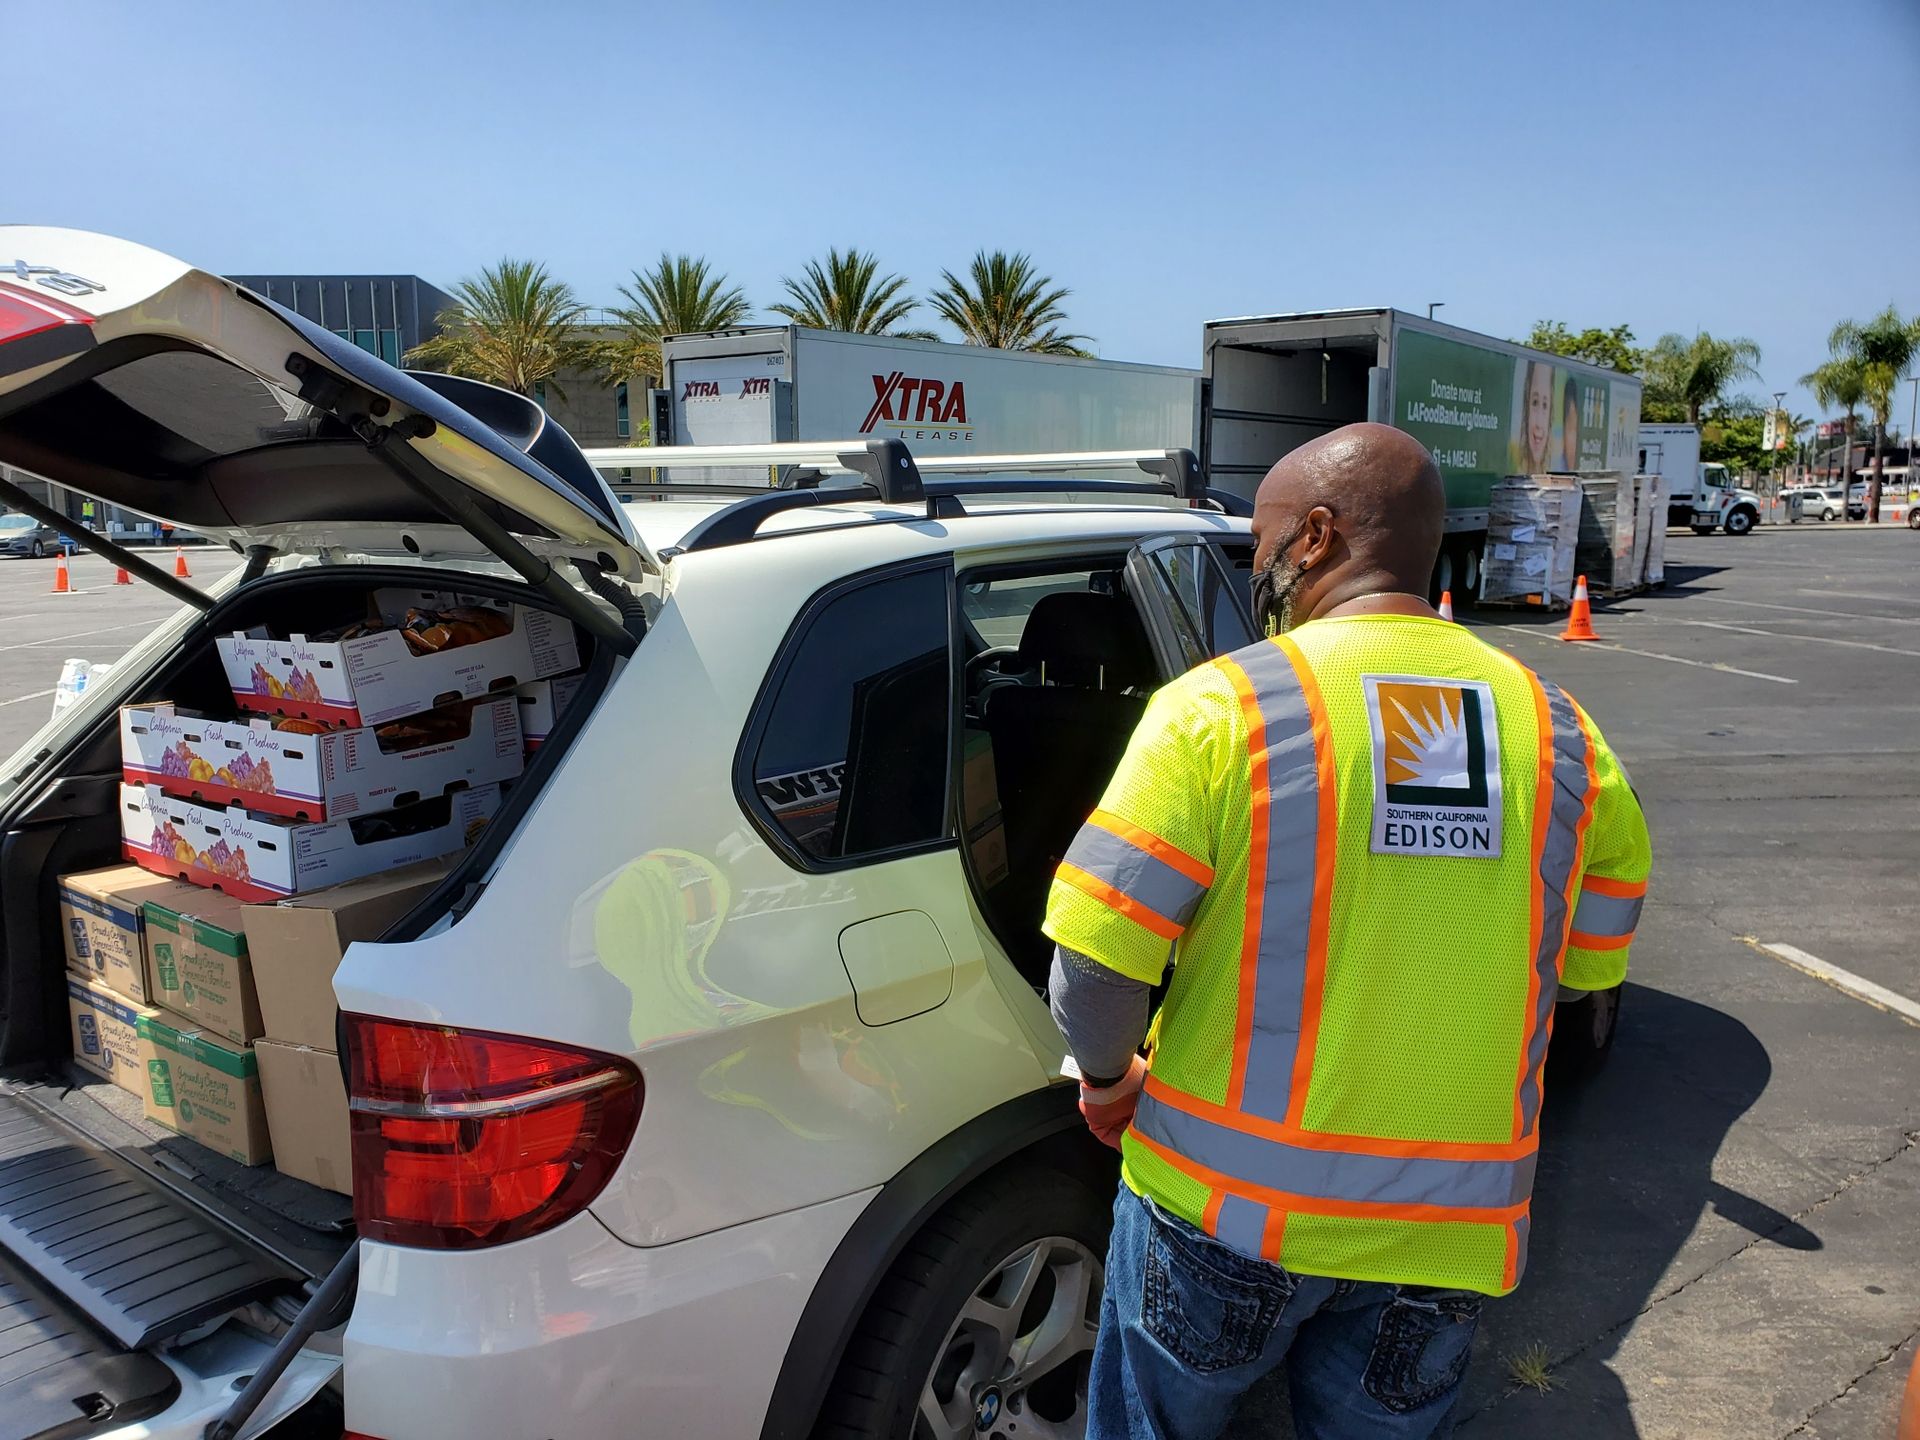 IBEW 47 members help load food boxes filled with various meal items, including fresh vegetables, chicken patties and spaghetti.